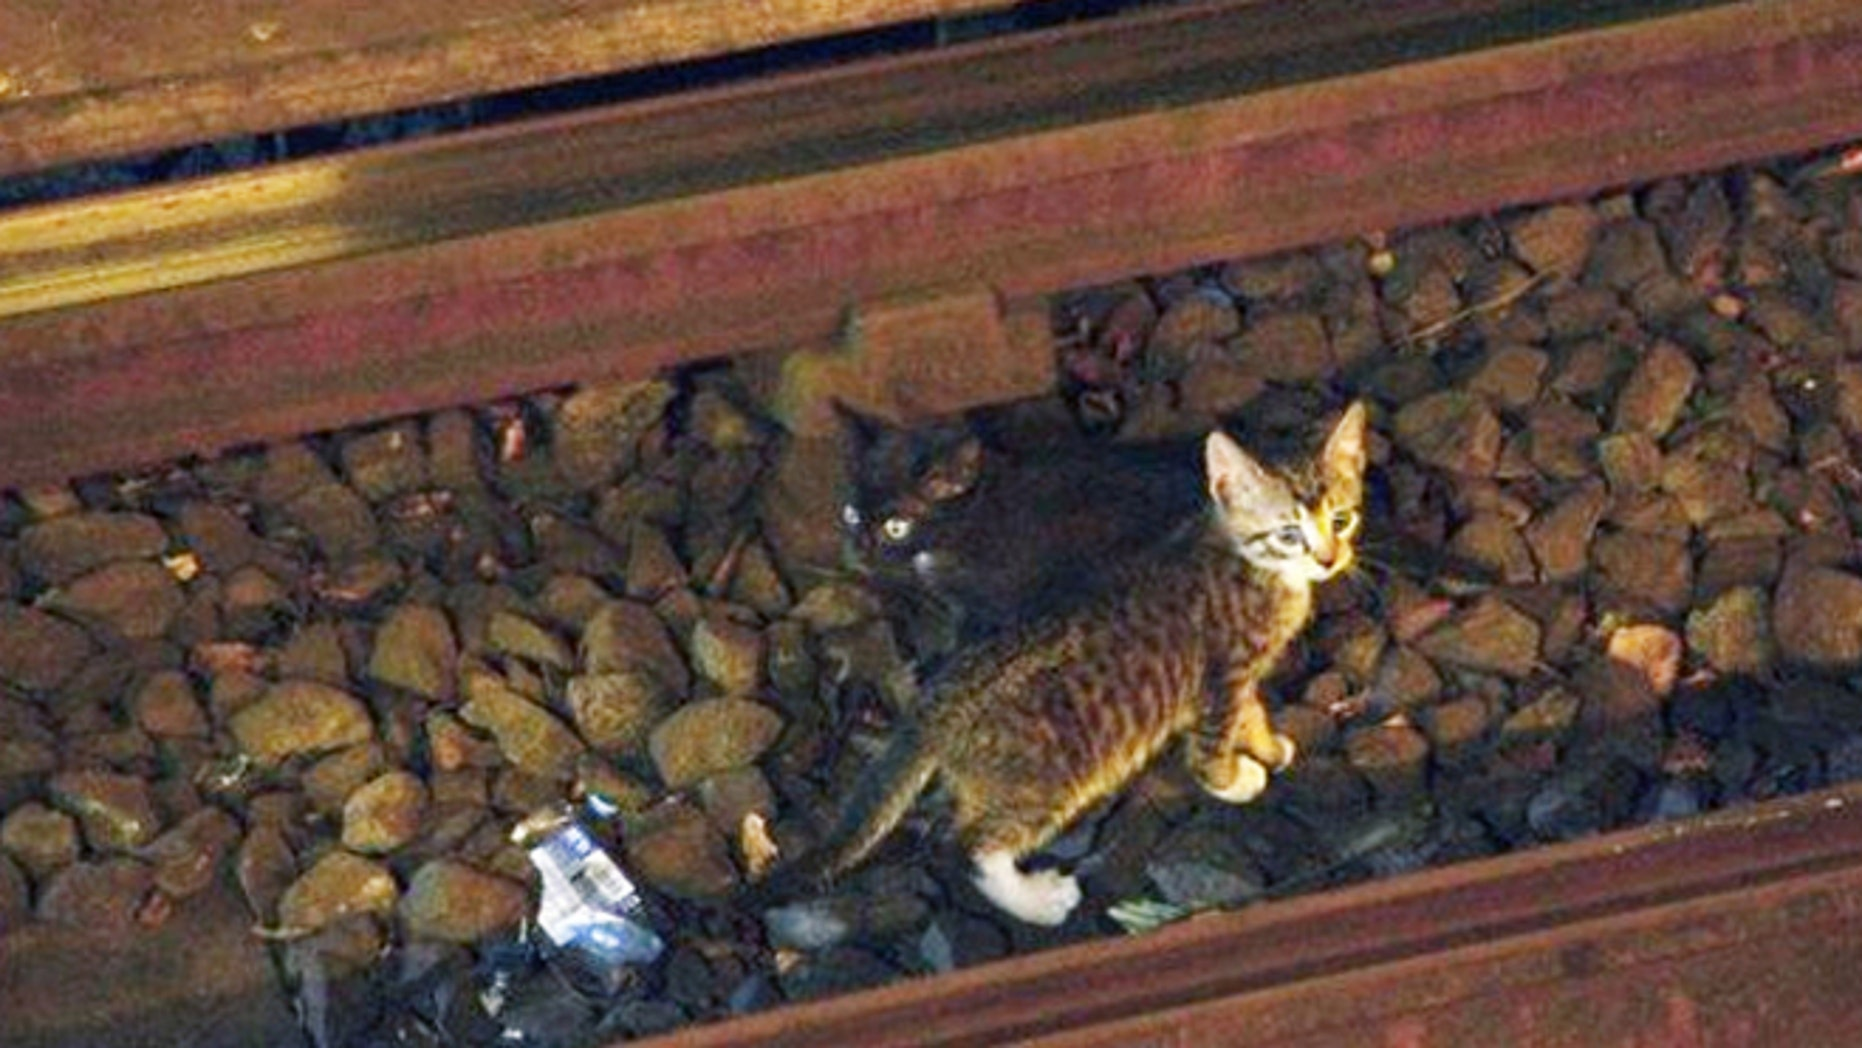 Aug. 29, 2013: Two kittens stand between the rails on subway tracks in the Brooklyn borough of New York.